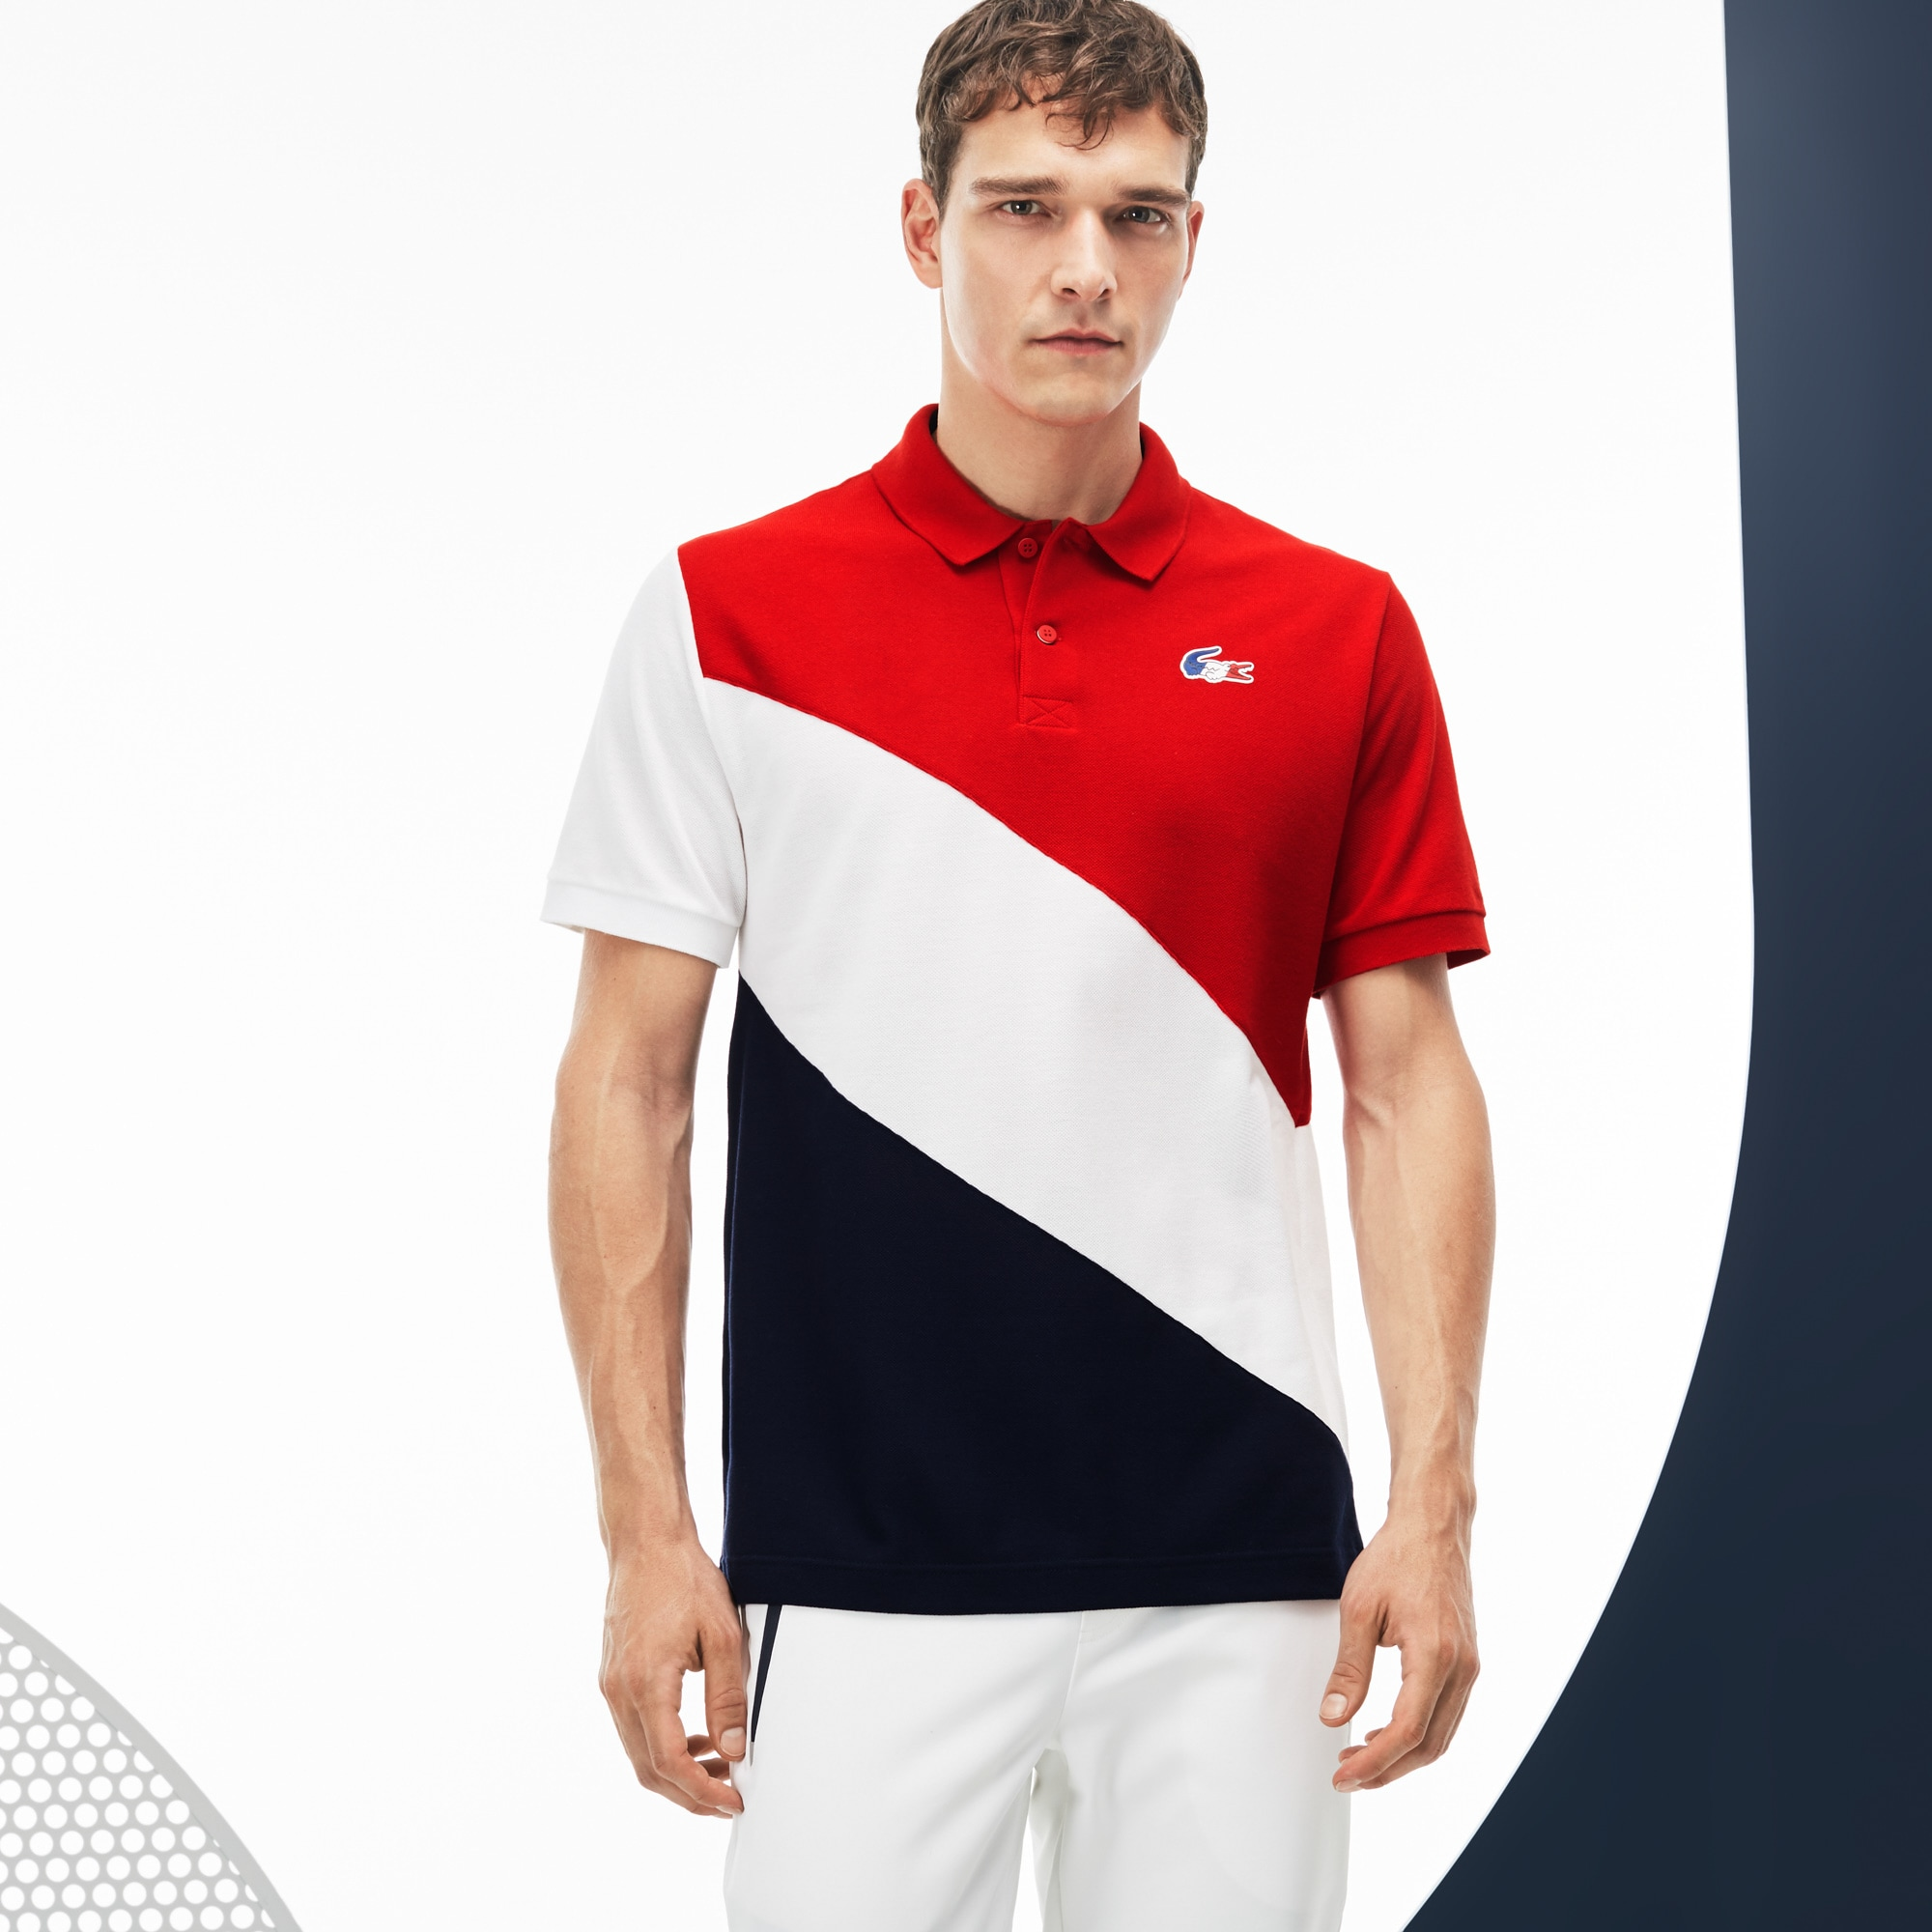 Men's Lacoste FRENCH SPORTING SPIRIT Edition Colorblock Petit Piqué Polo Shirt